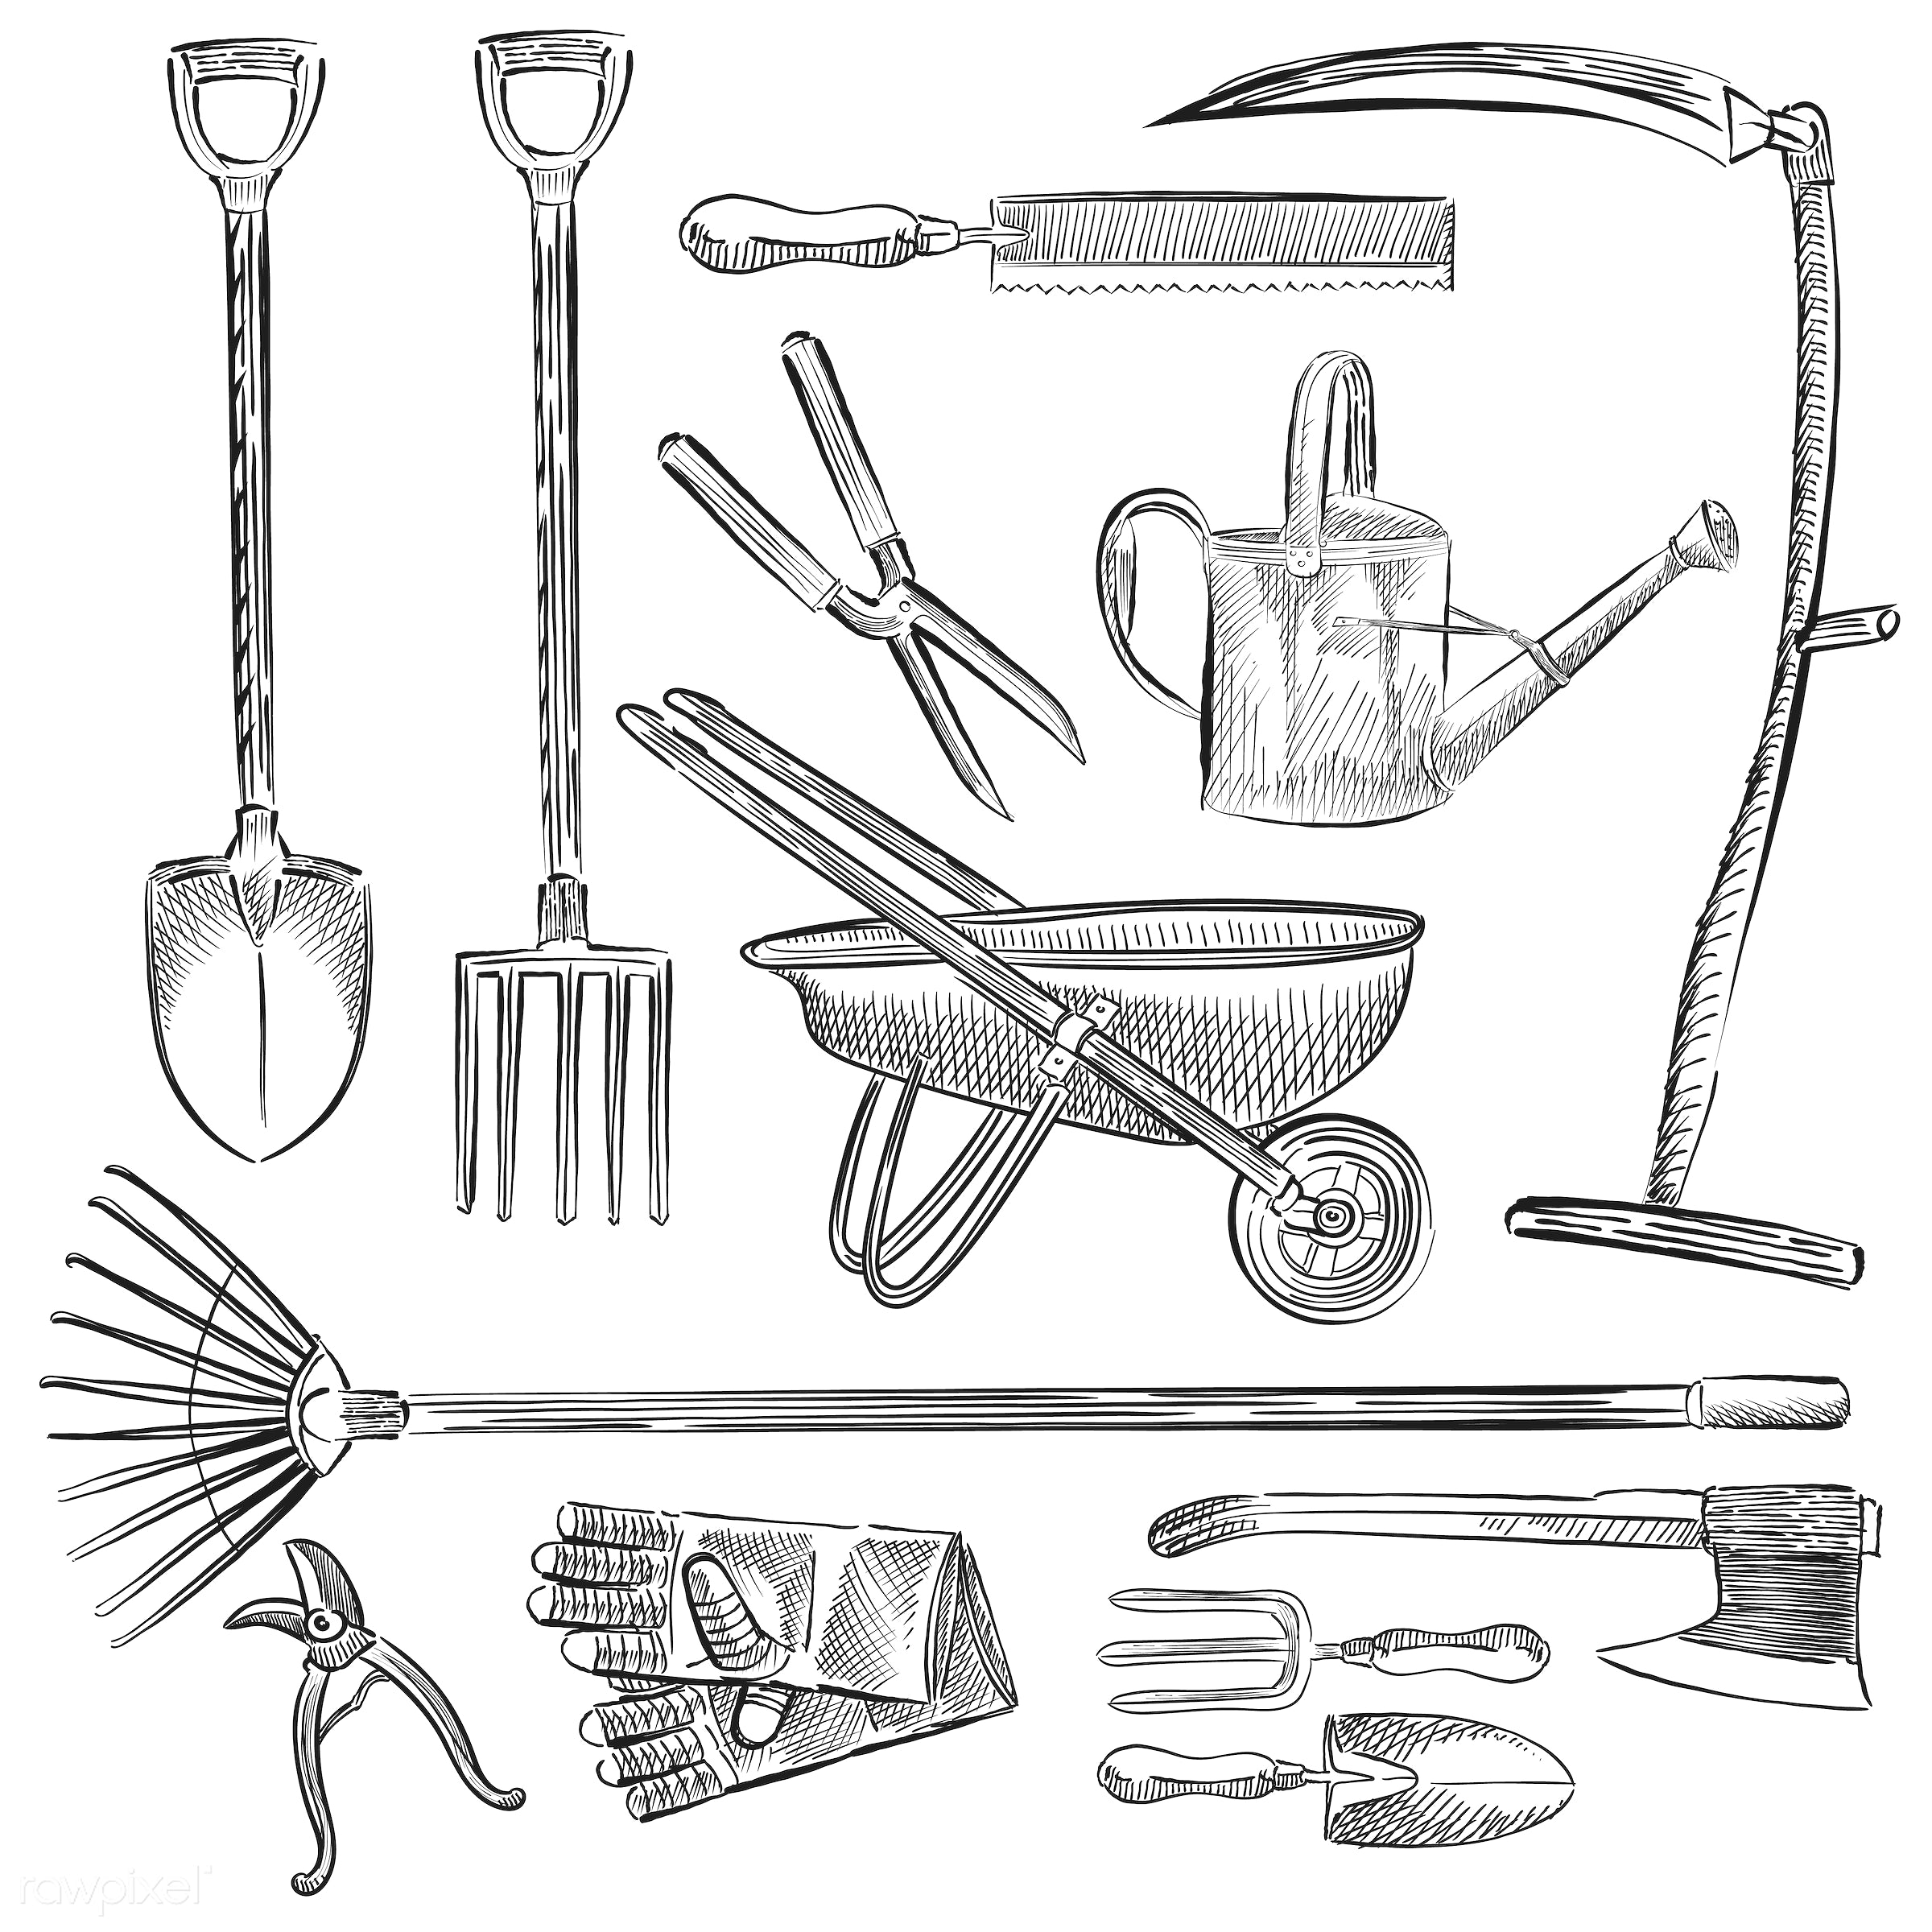 Illustration of a set of gardening tools - rake, shovel, vector, antique, axe, black, collection, design, drawing, equipment...